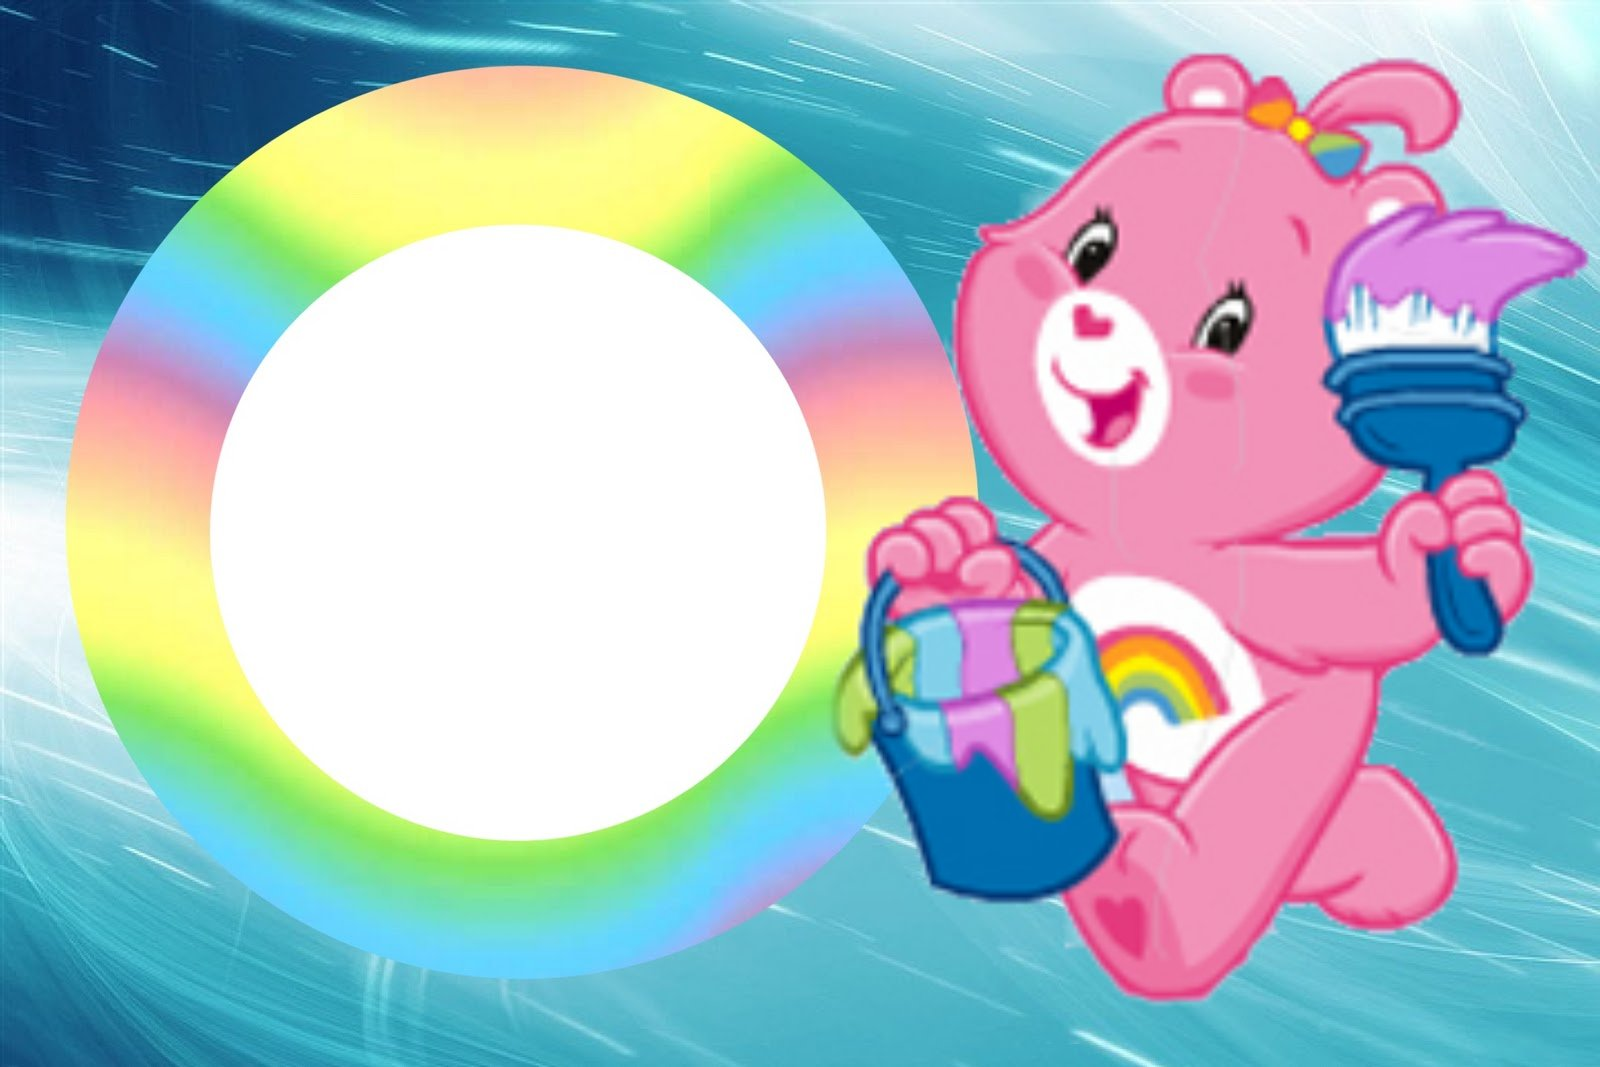 Care Bears Party Free Printable Invitations Oh My Fiesta